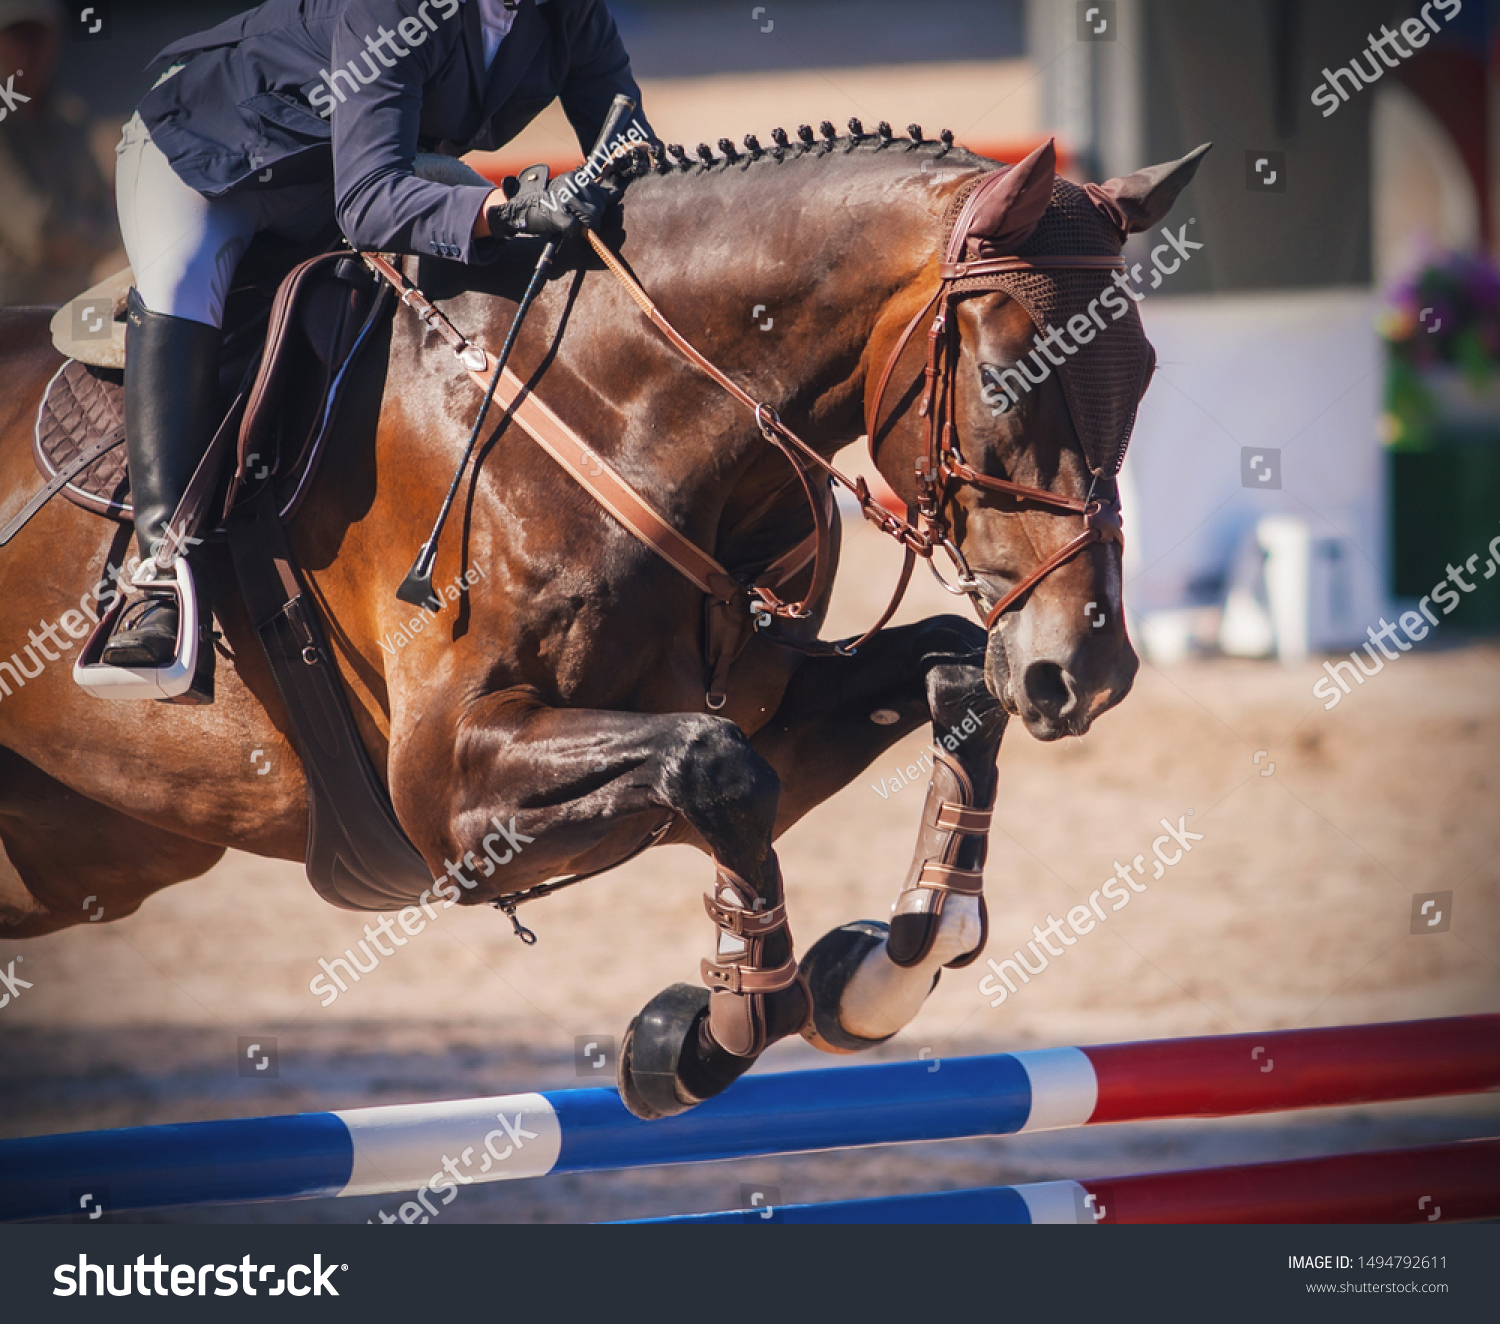 Chestnut Horse Dressed Brown Horse Gear Stock Photo Edit Now 1494792611